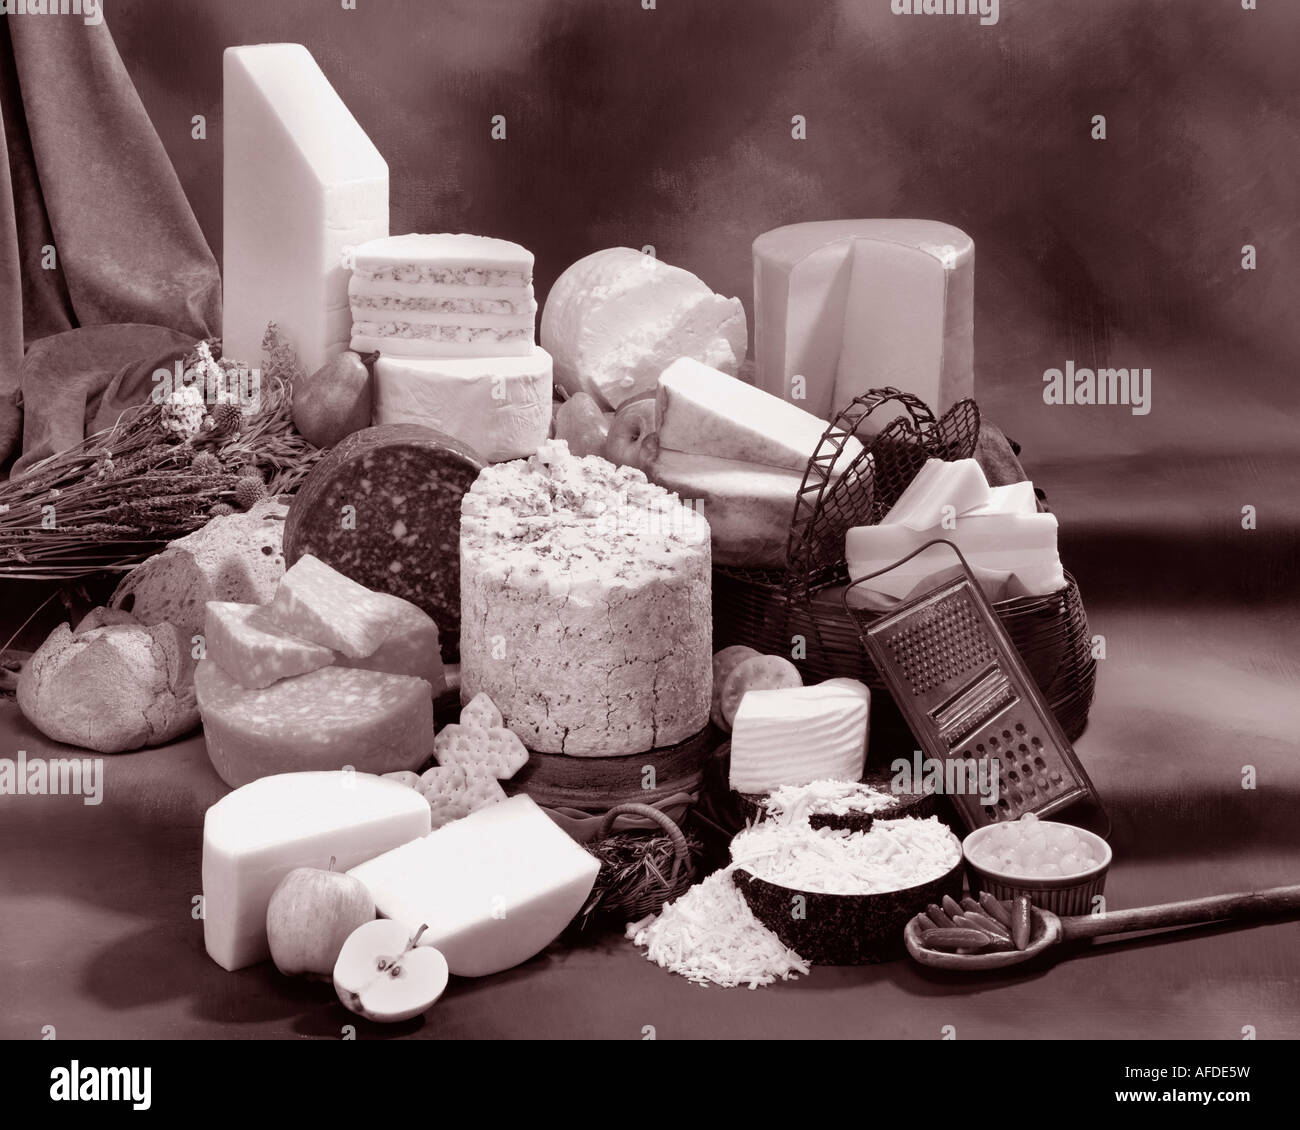 English Cheeses in group sepia photograph on warm toned mottled background. Horizontal  Format, studio tabletop. Stock Photo